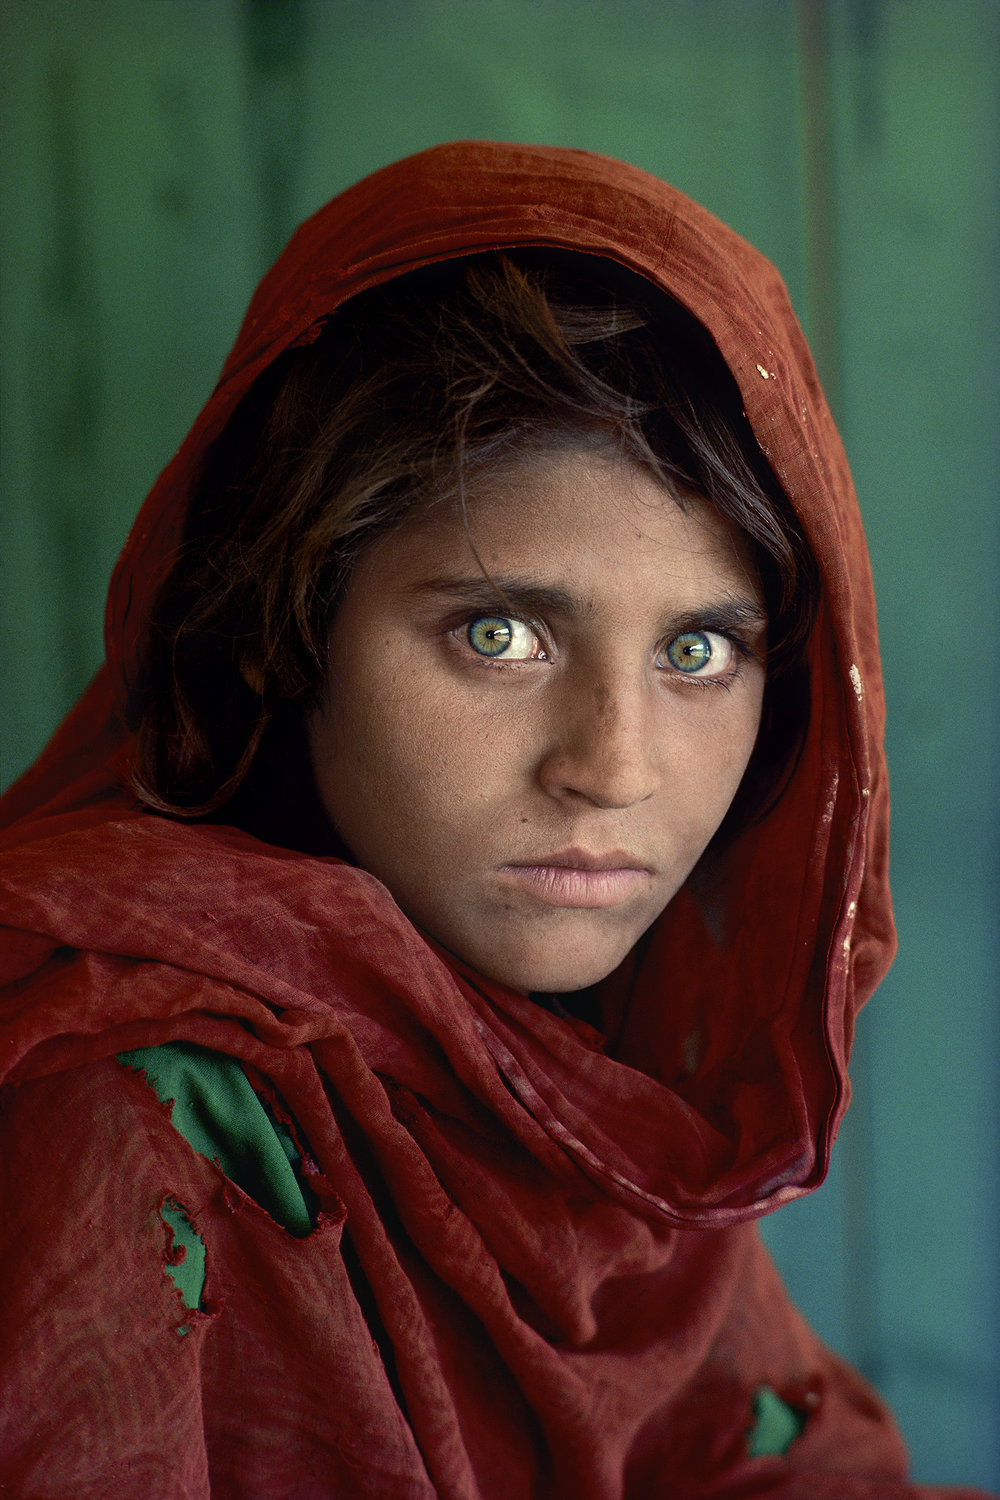 Sharbat Gula, Afghan Girl Peshawar, Pakistan 1984 © Steve McCurry